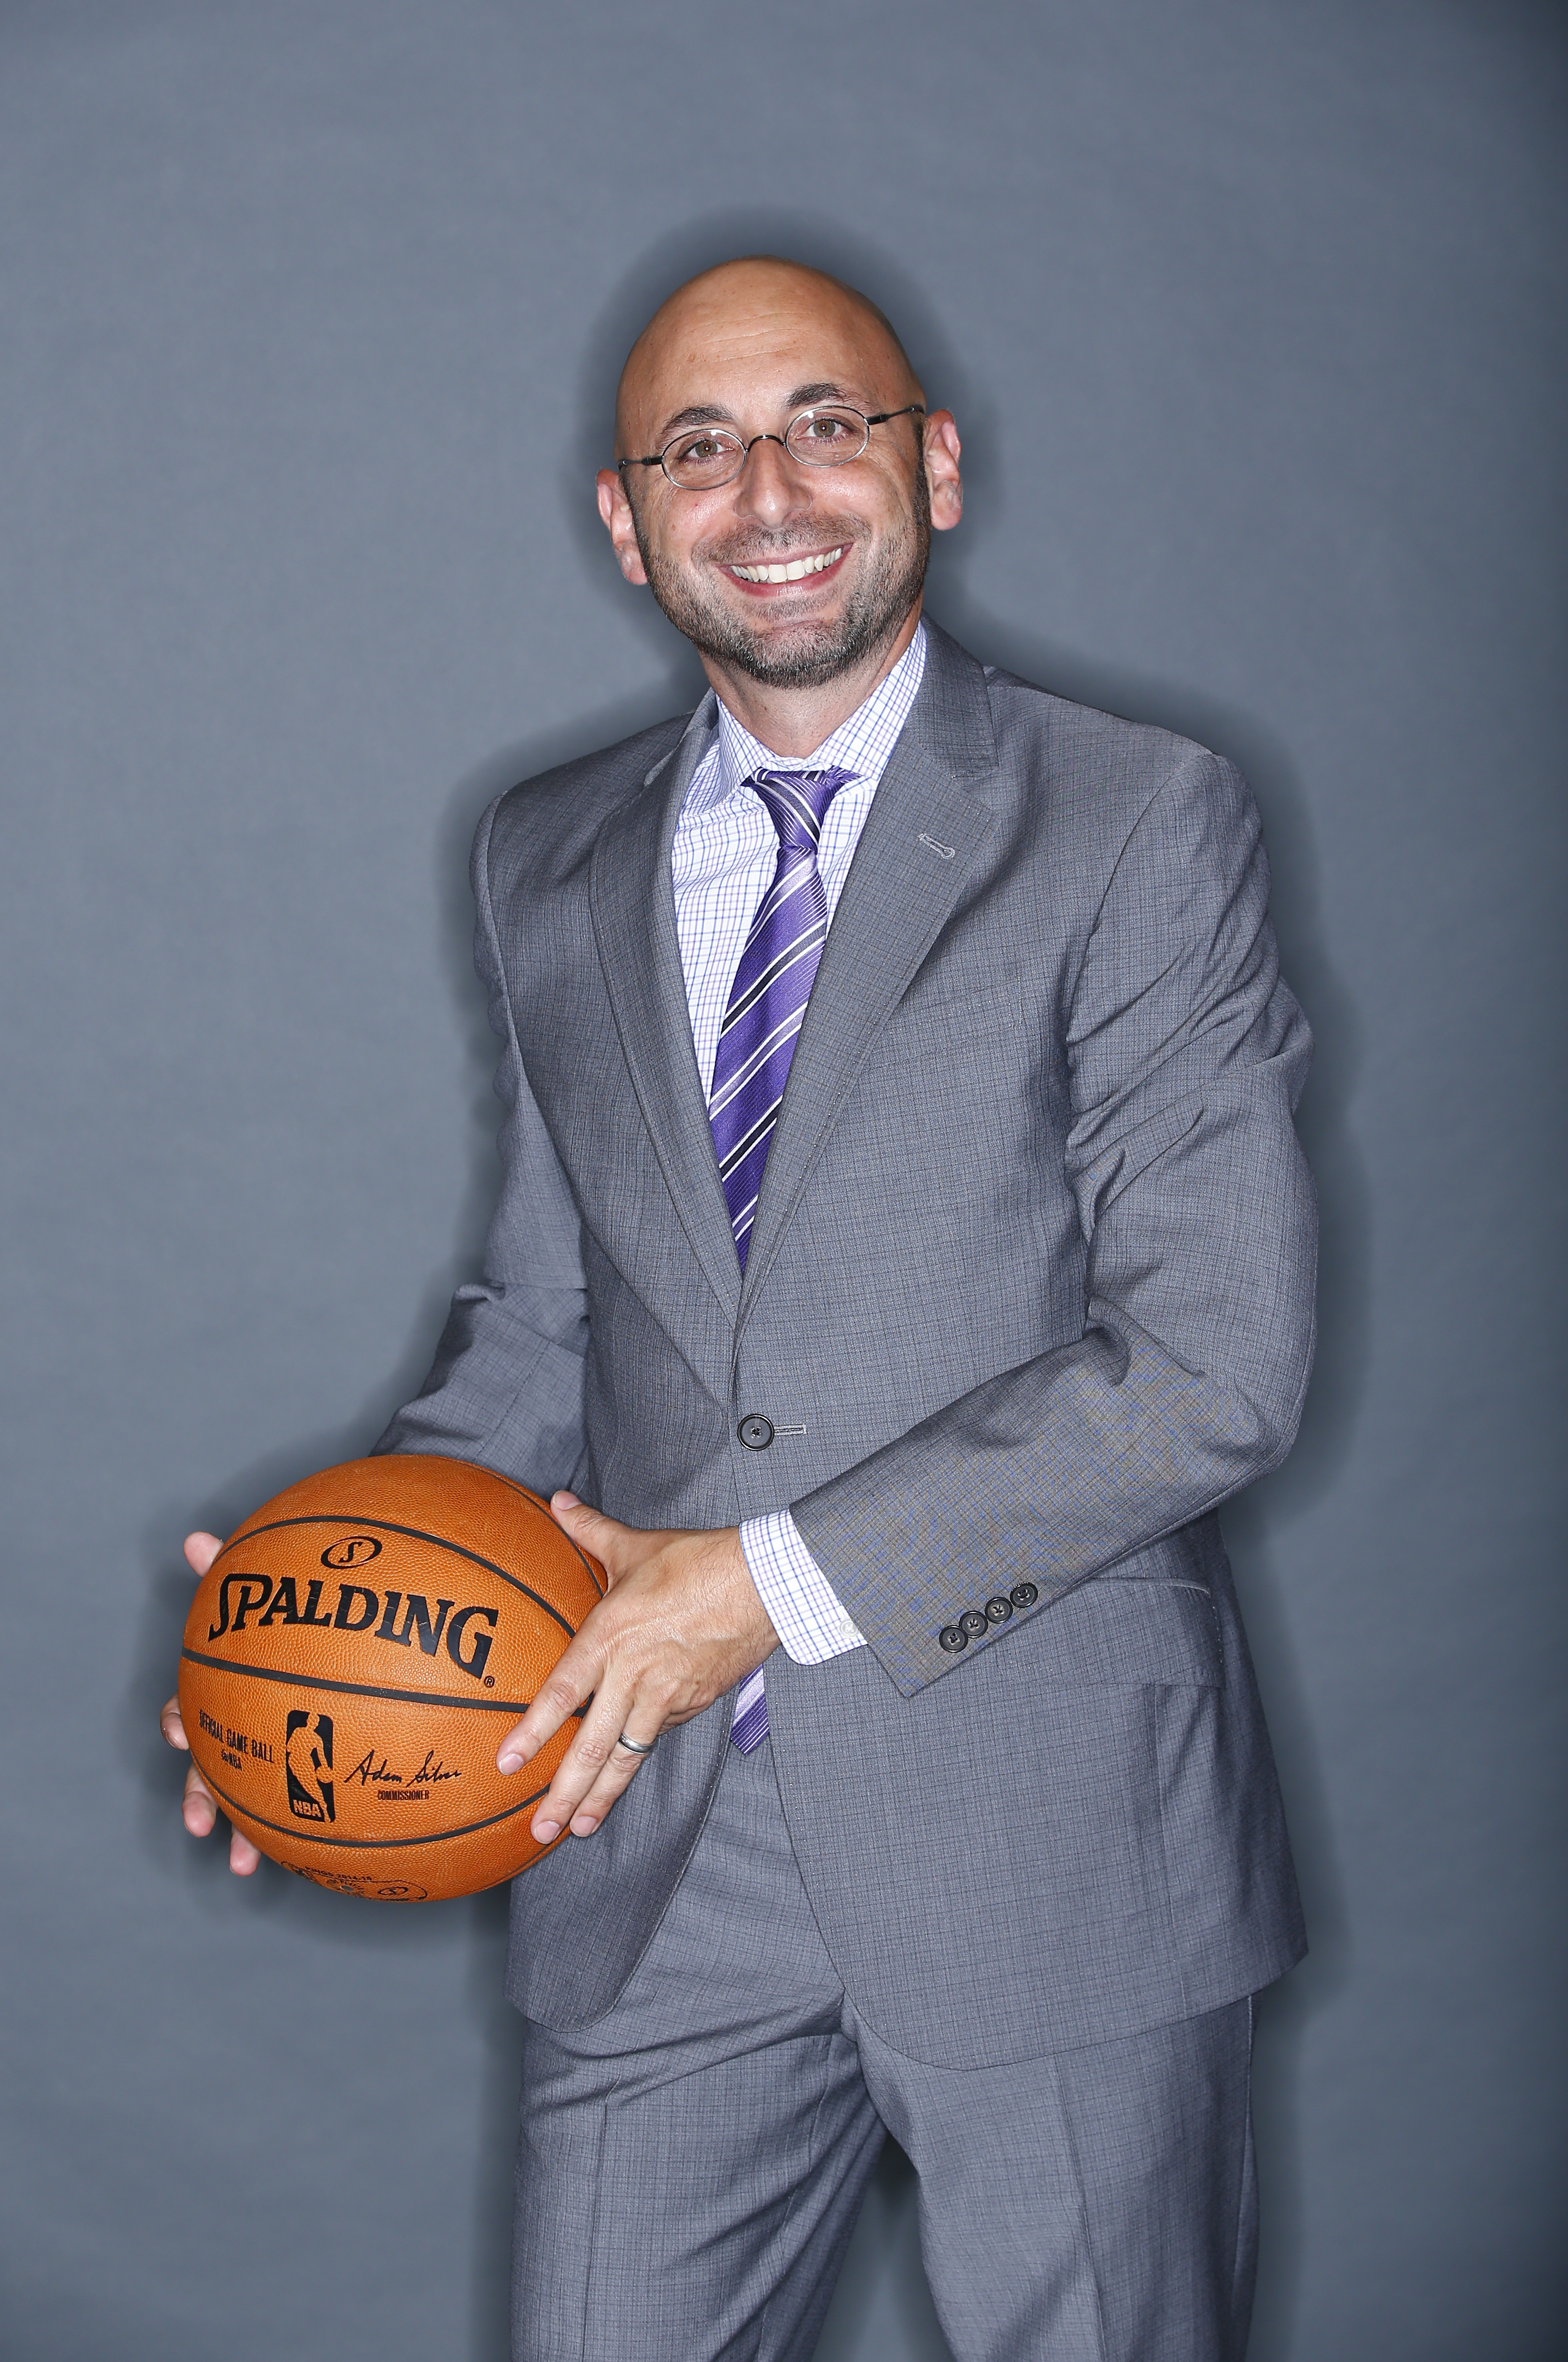 Pete D'Alessandro of the Sacramento Kings poses for a photo on media day Sept. 26, 2014. (credit: Rocky Widner/NBAE via Getty Images)